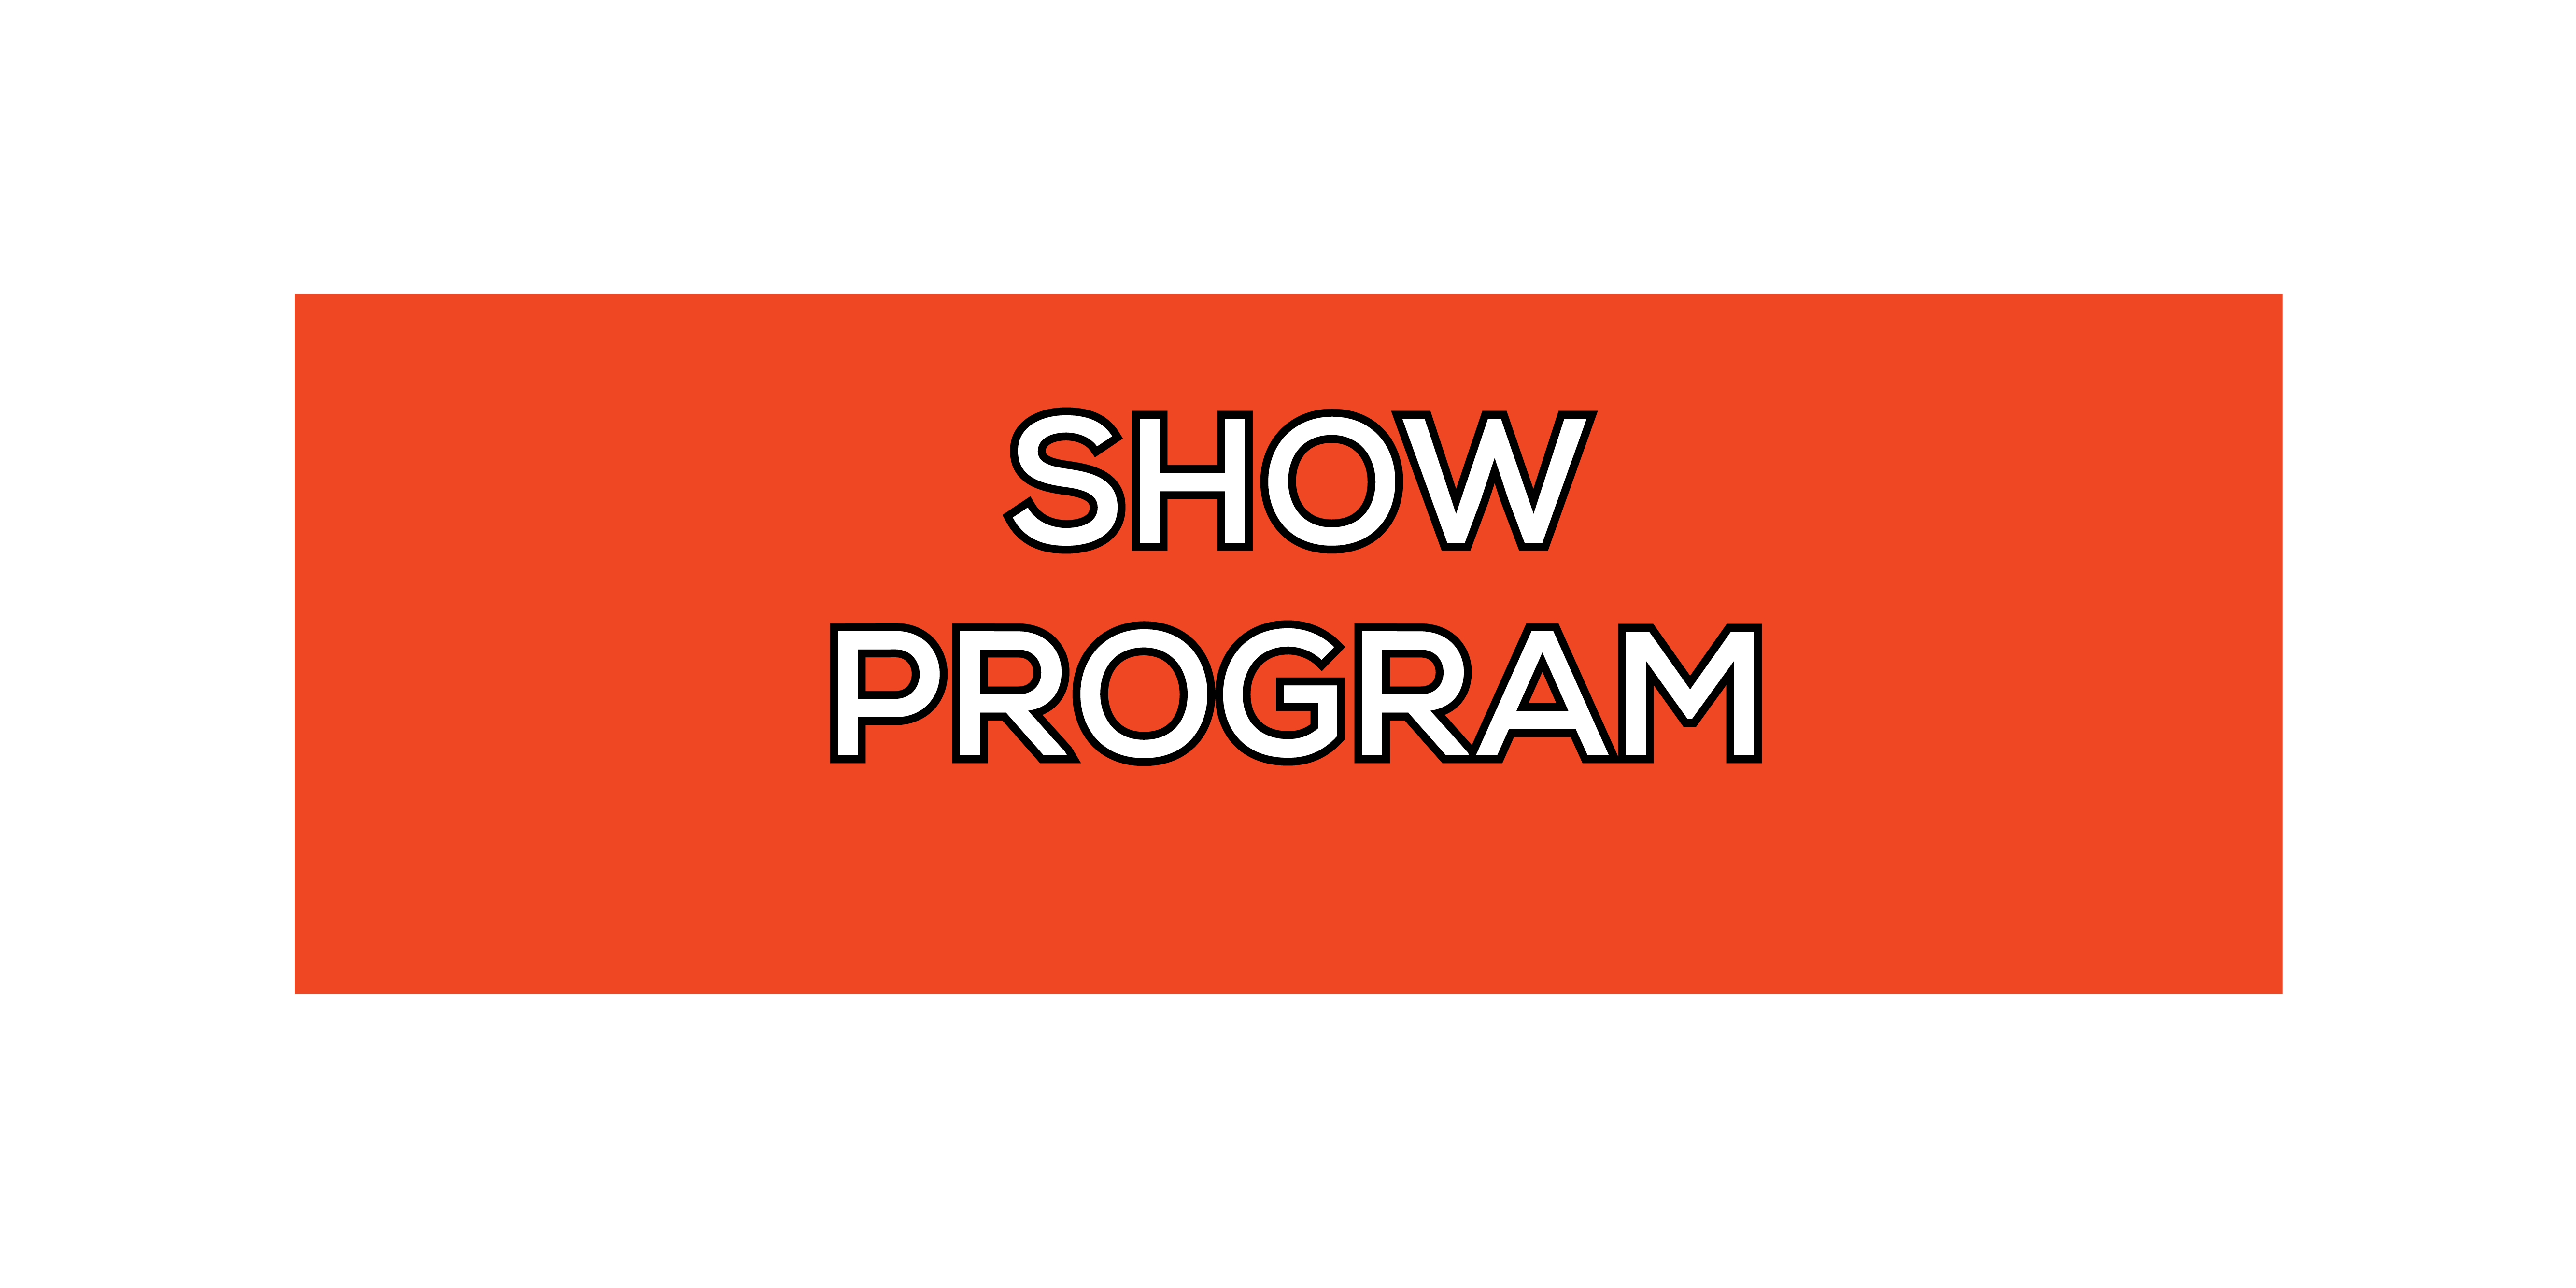 Click this button to download the show program